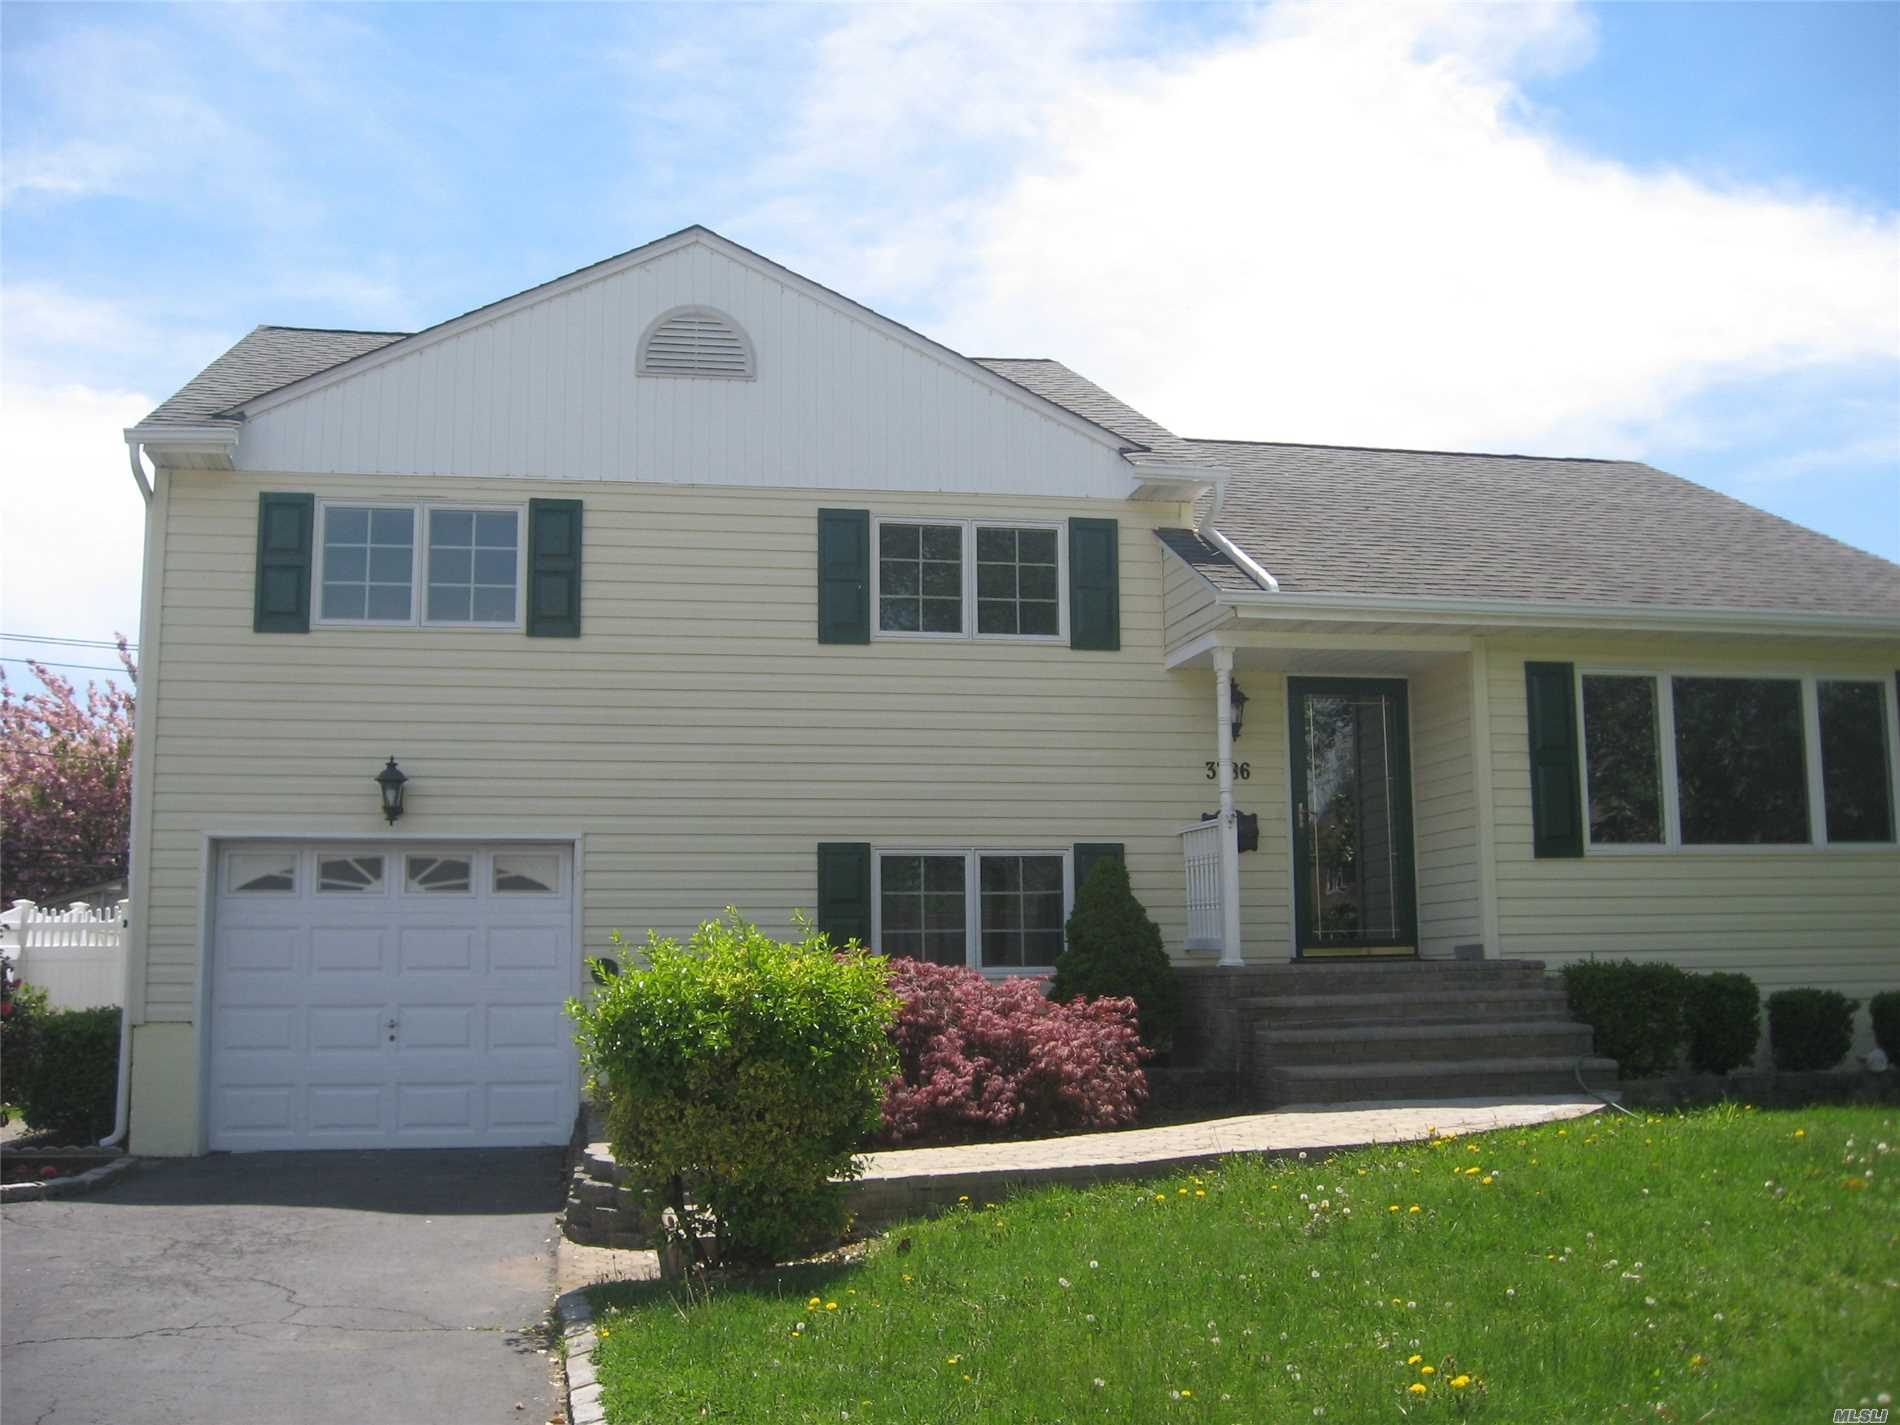 3786 Regent Ln - Wantagh, New York